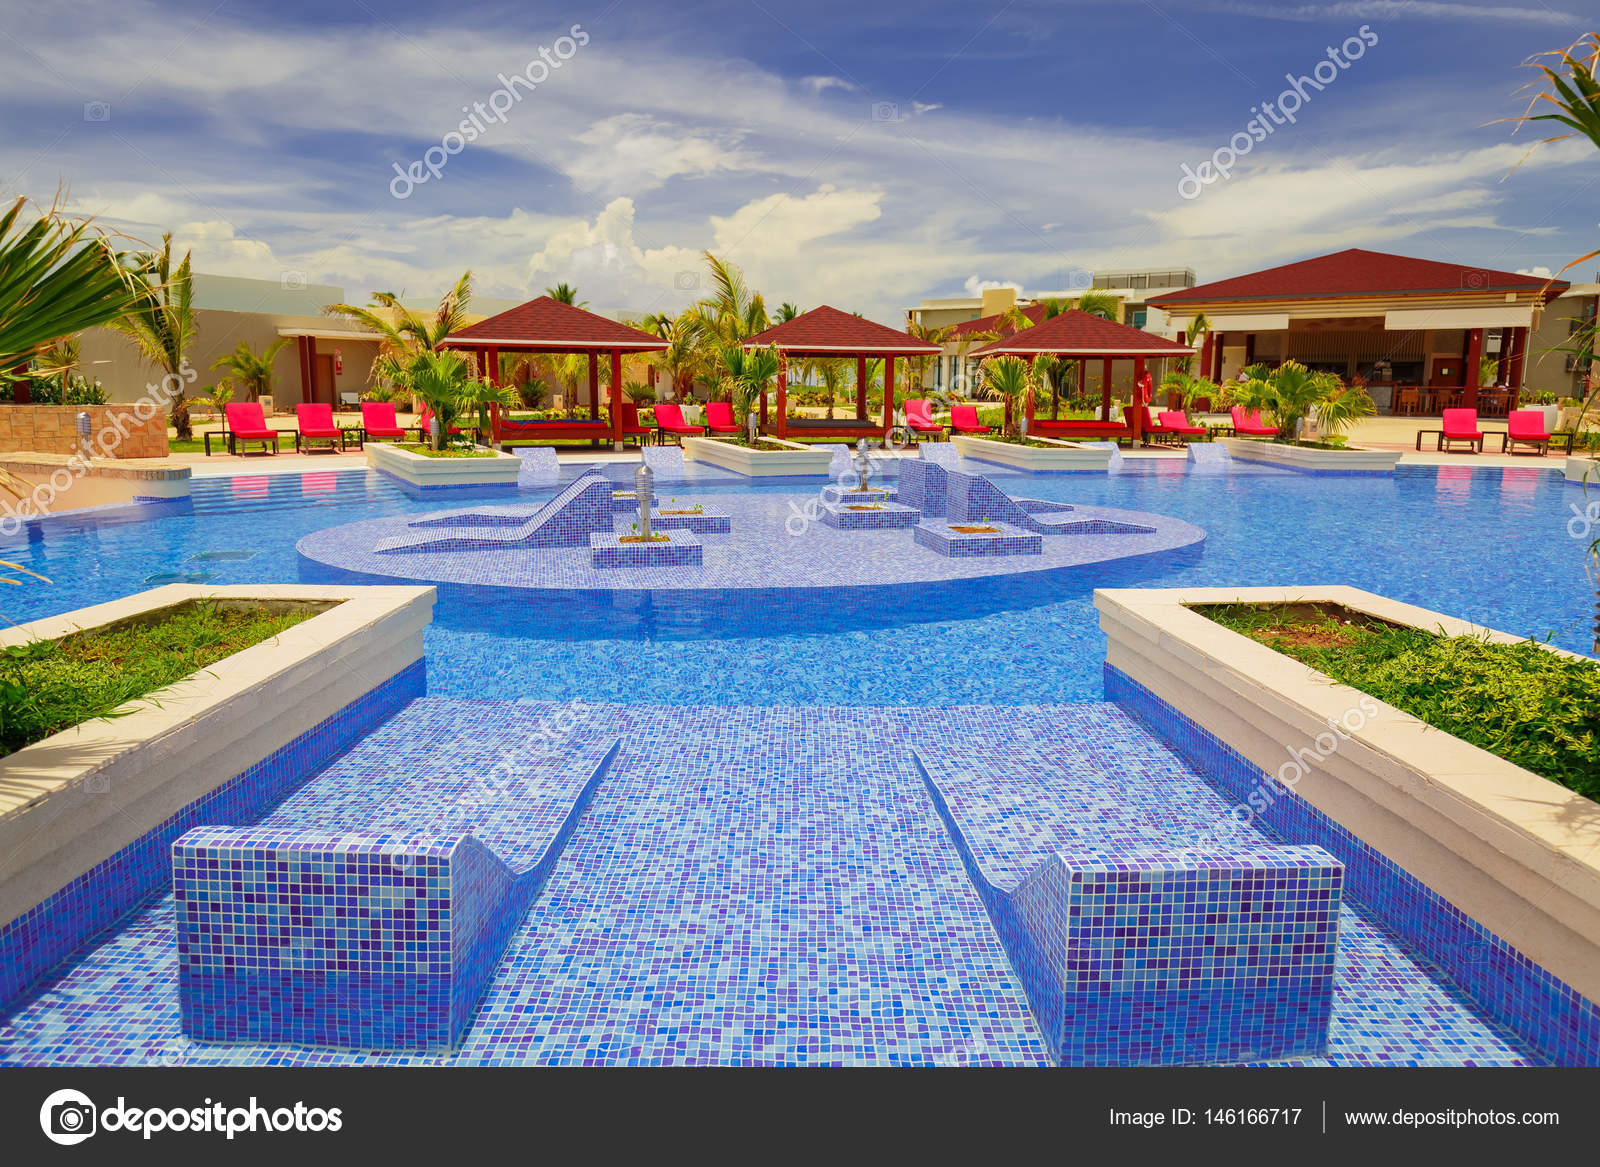 Nice Cozy Stylish Swimming Pool And Grounds On Sunny Beautiful Summer Day Stock Editorial Photo C Vitaldrum 146166717